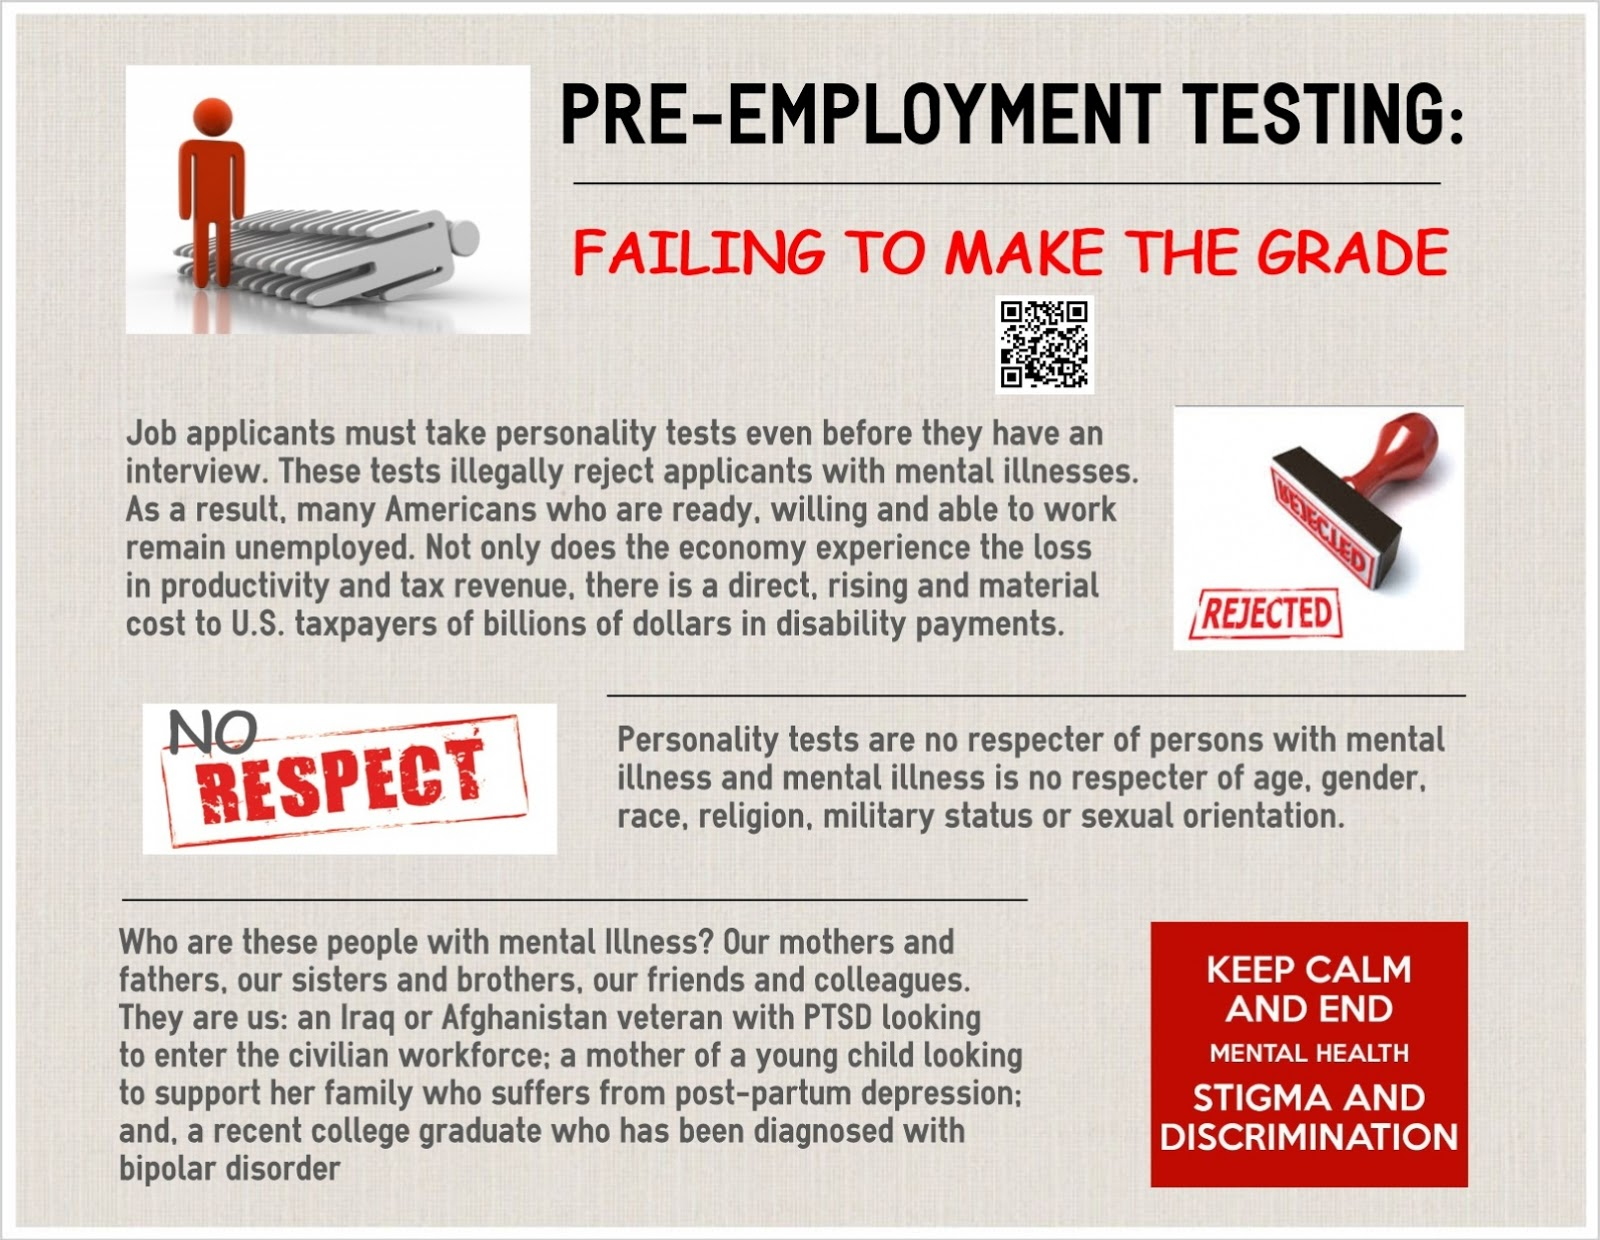 Employment Testing: Failing to Make the Grade: July 2013